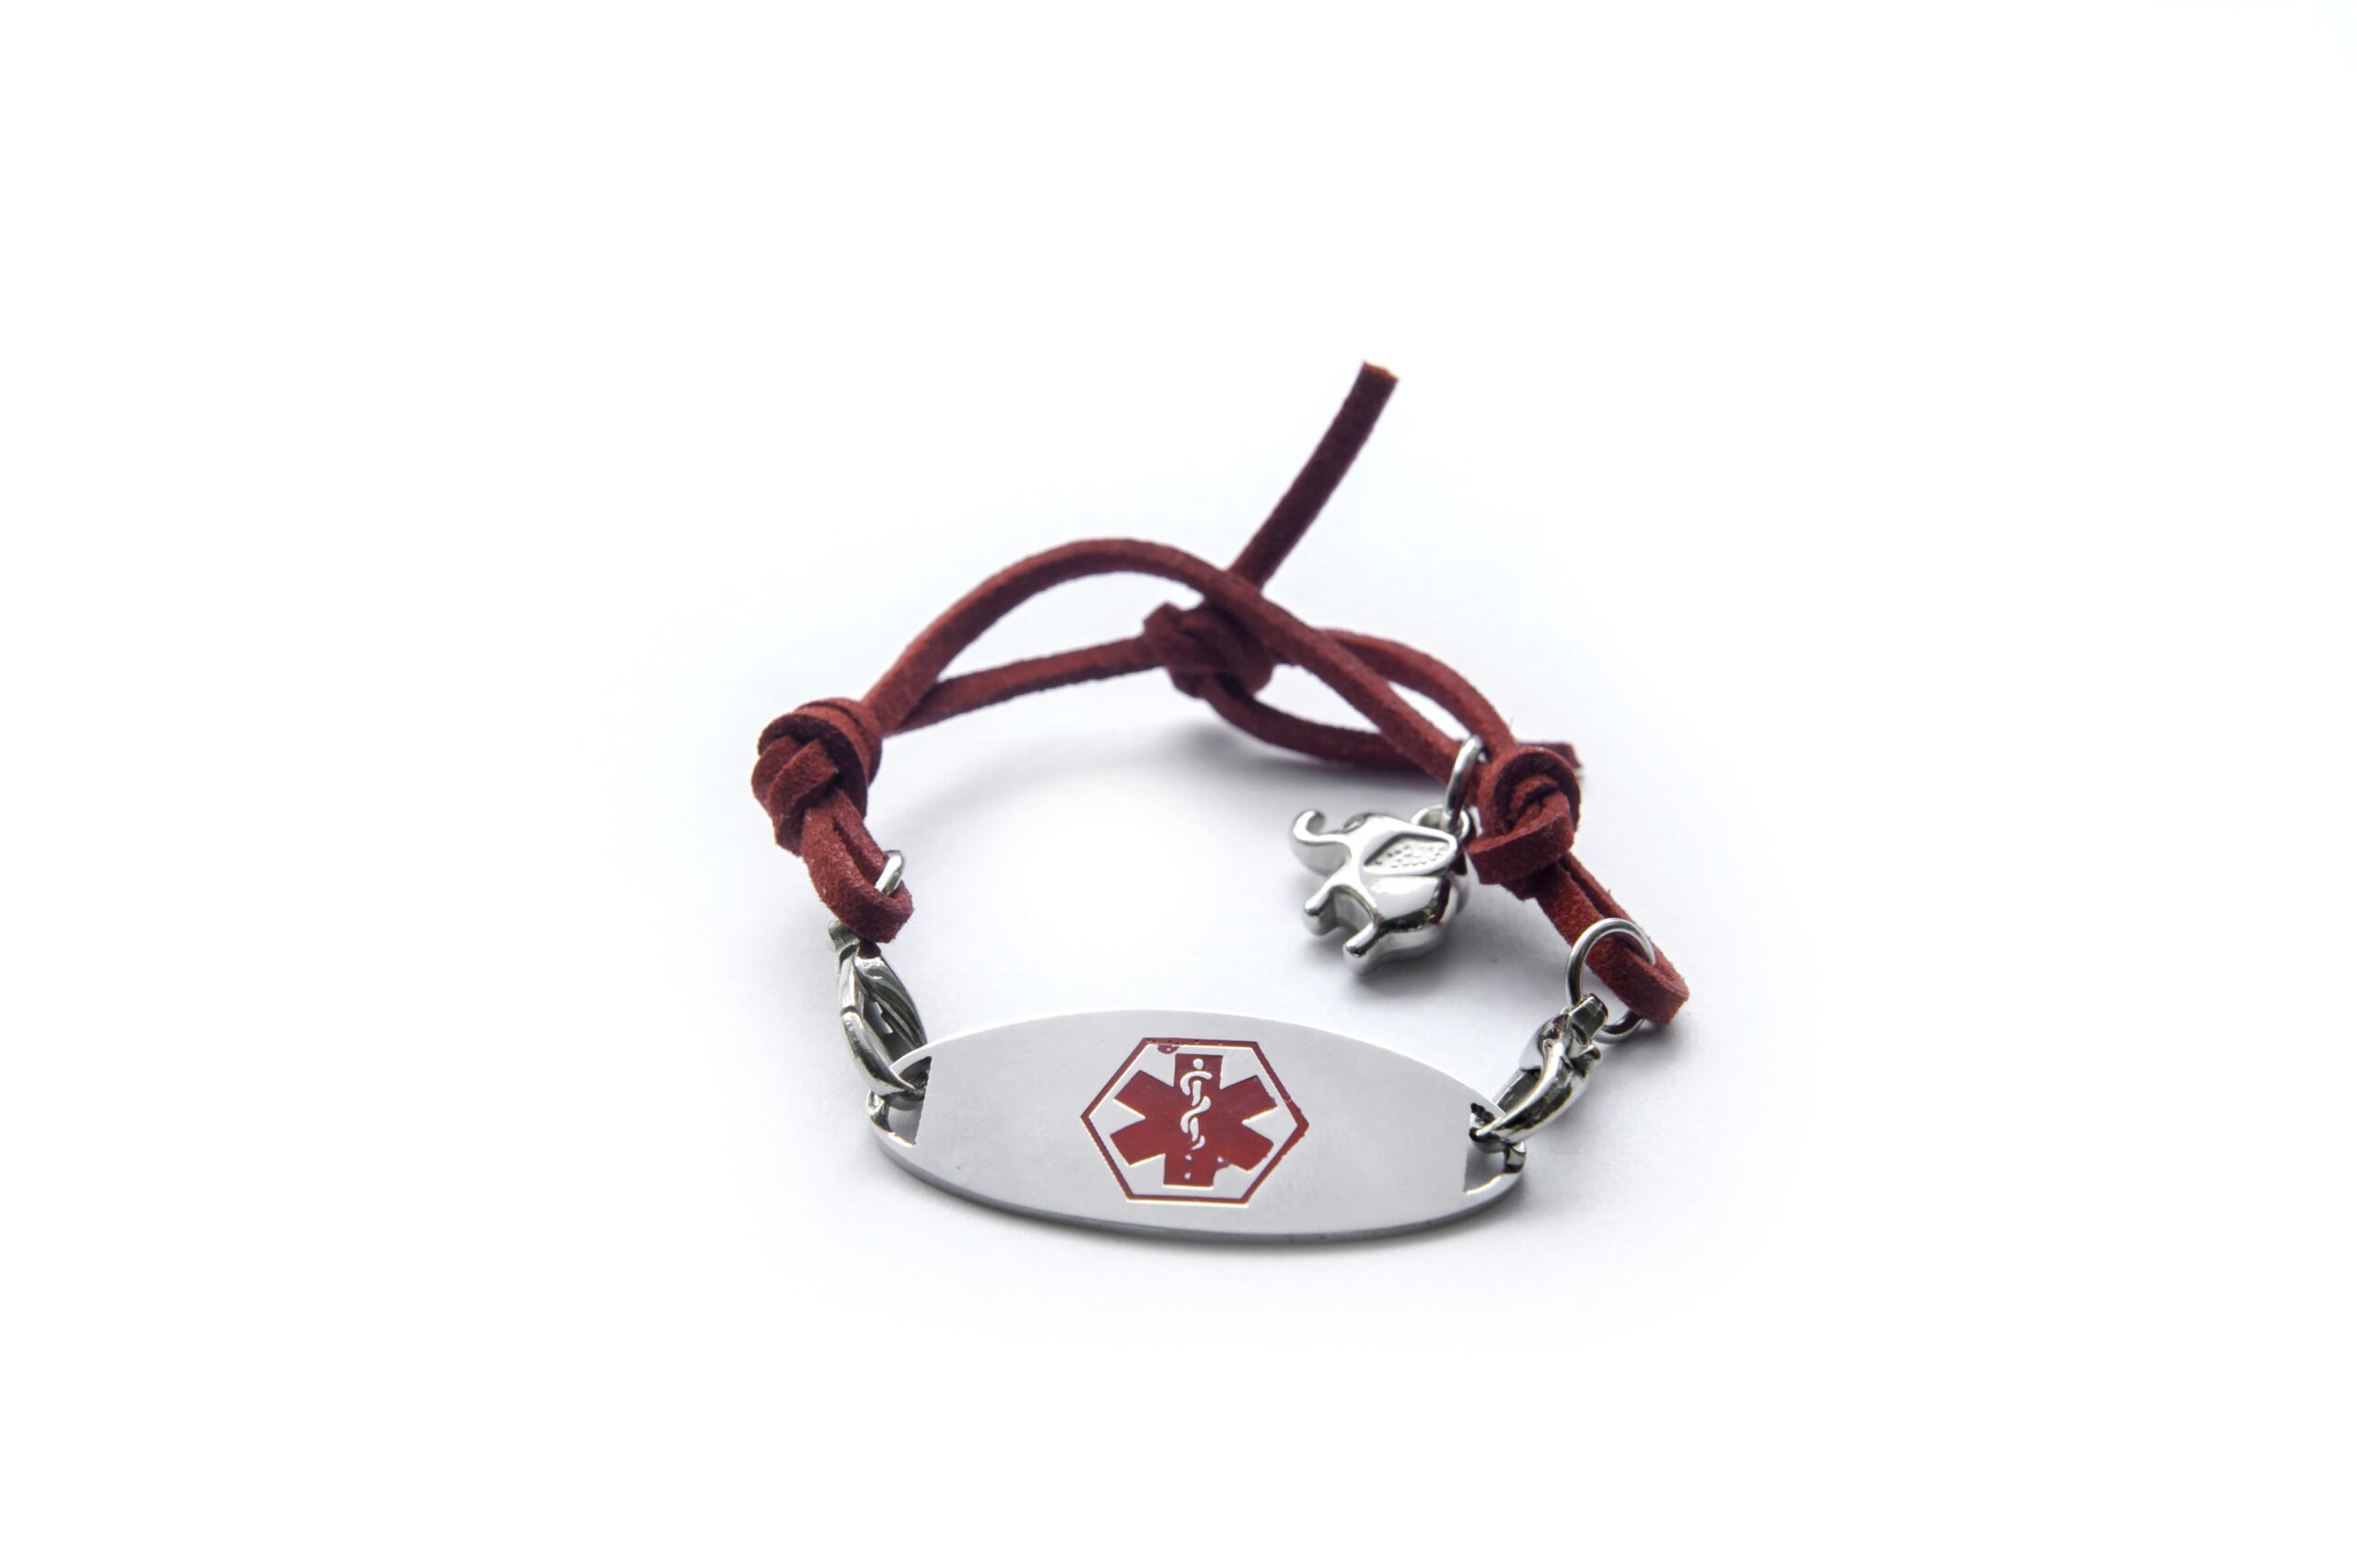 10 Medical ID Bracelets for Women That Are Practical and Have Style